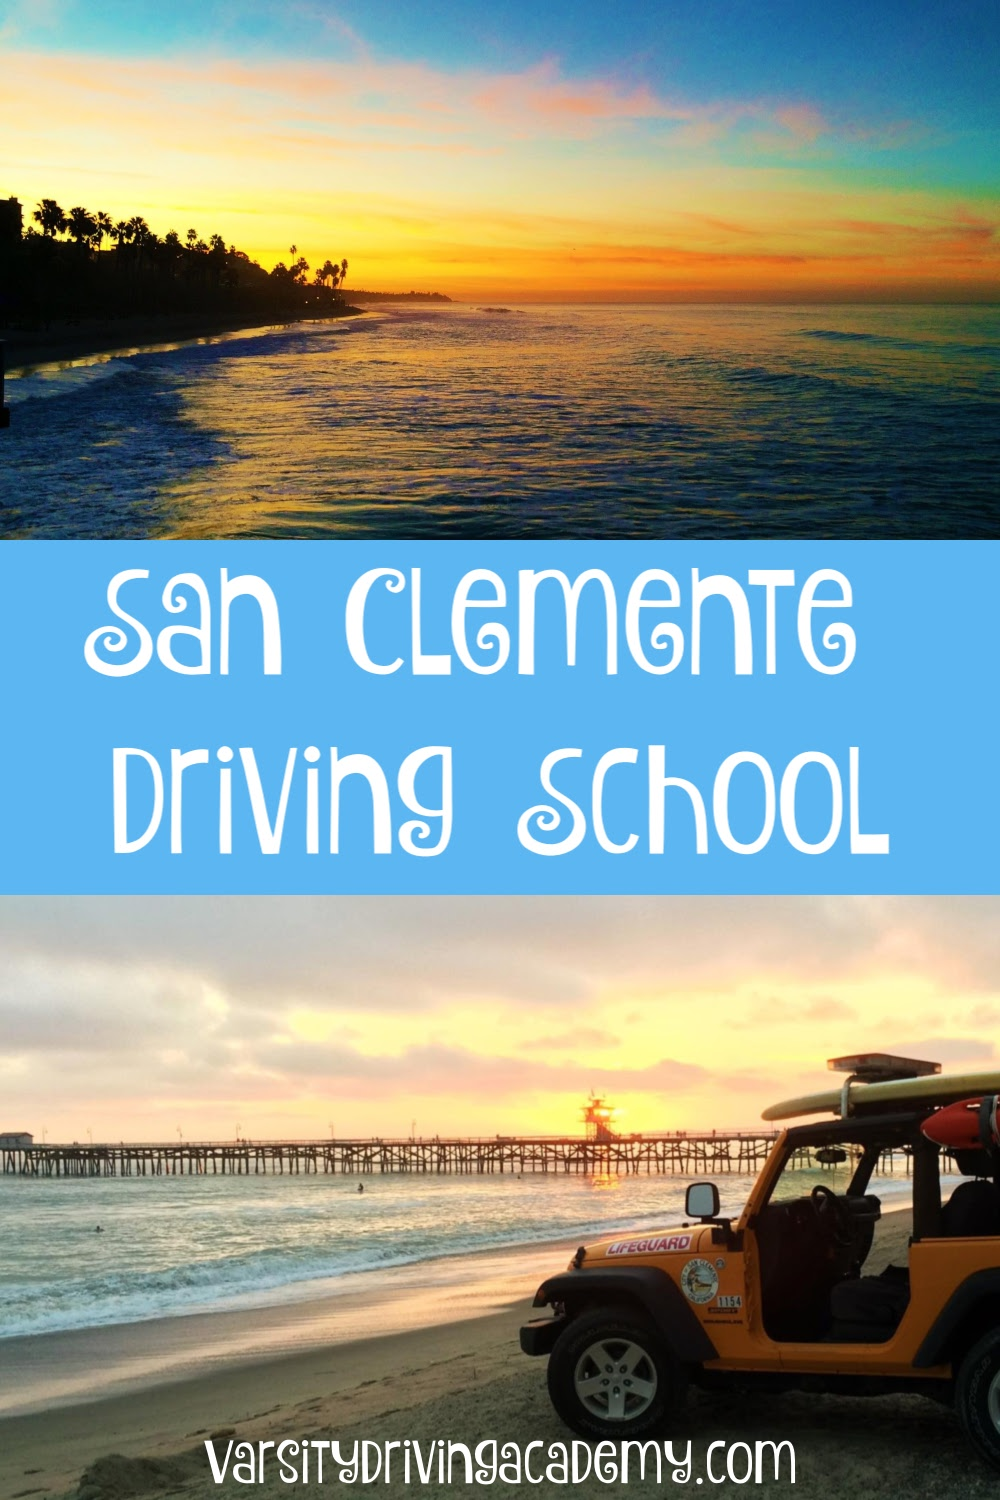 San Clemente residents can sign up for the best San Clemente driving school, Varsity Driving Academy and get the best drivers ed in San Clemente from certified driving trainers.